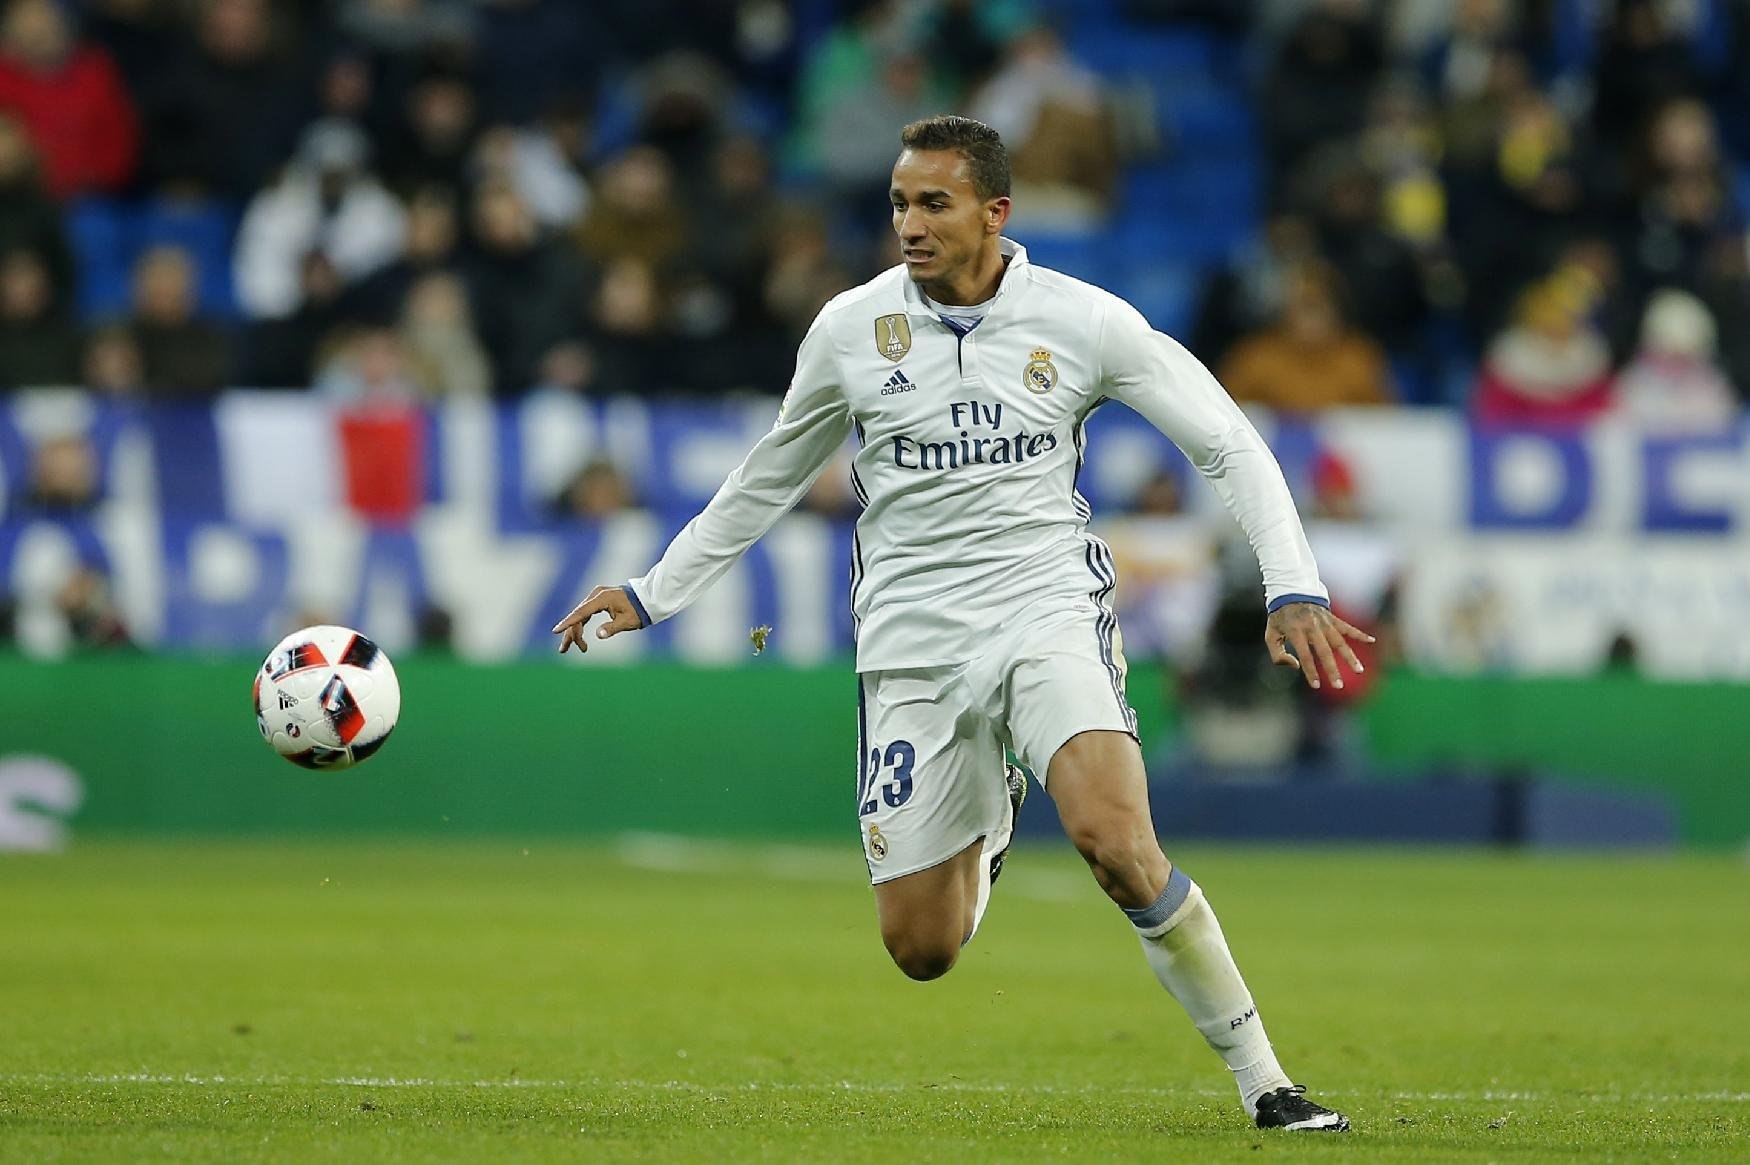 Real Madrid's Danilo controls the ball during a Copa del Rey, quarter final, 1st leg soccer match between Real Madrid and Celta at the Santiago Bernab...